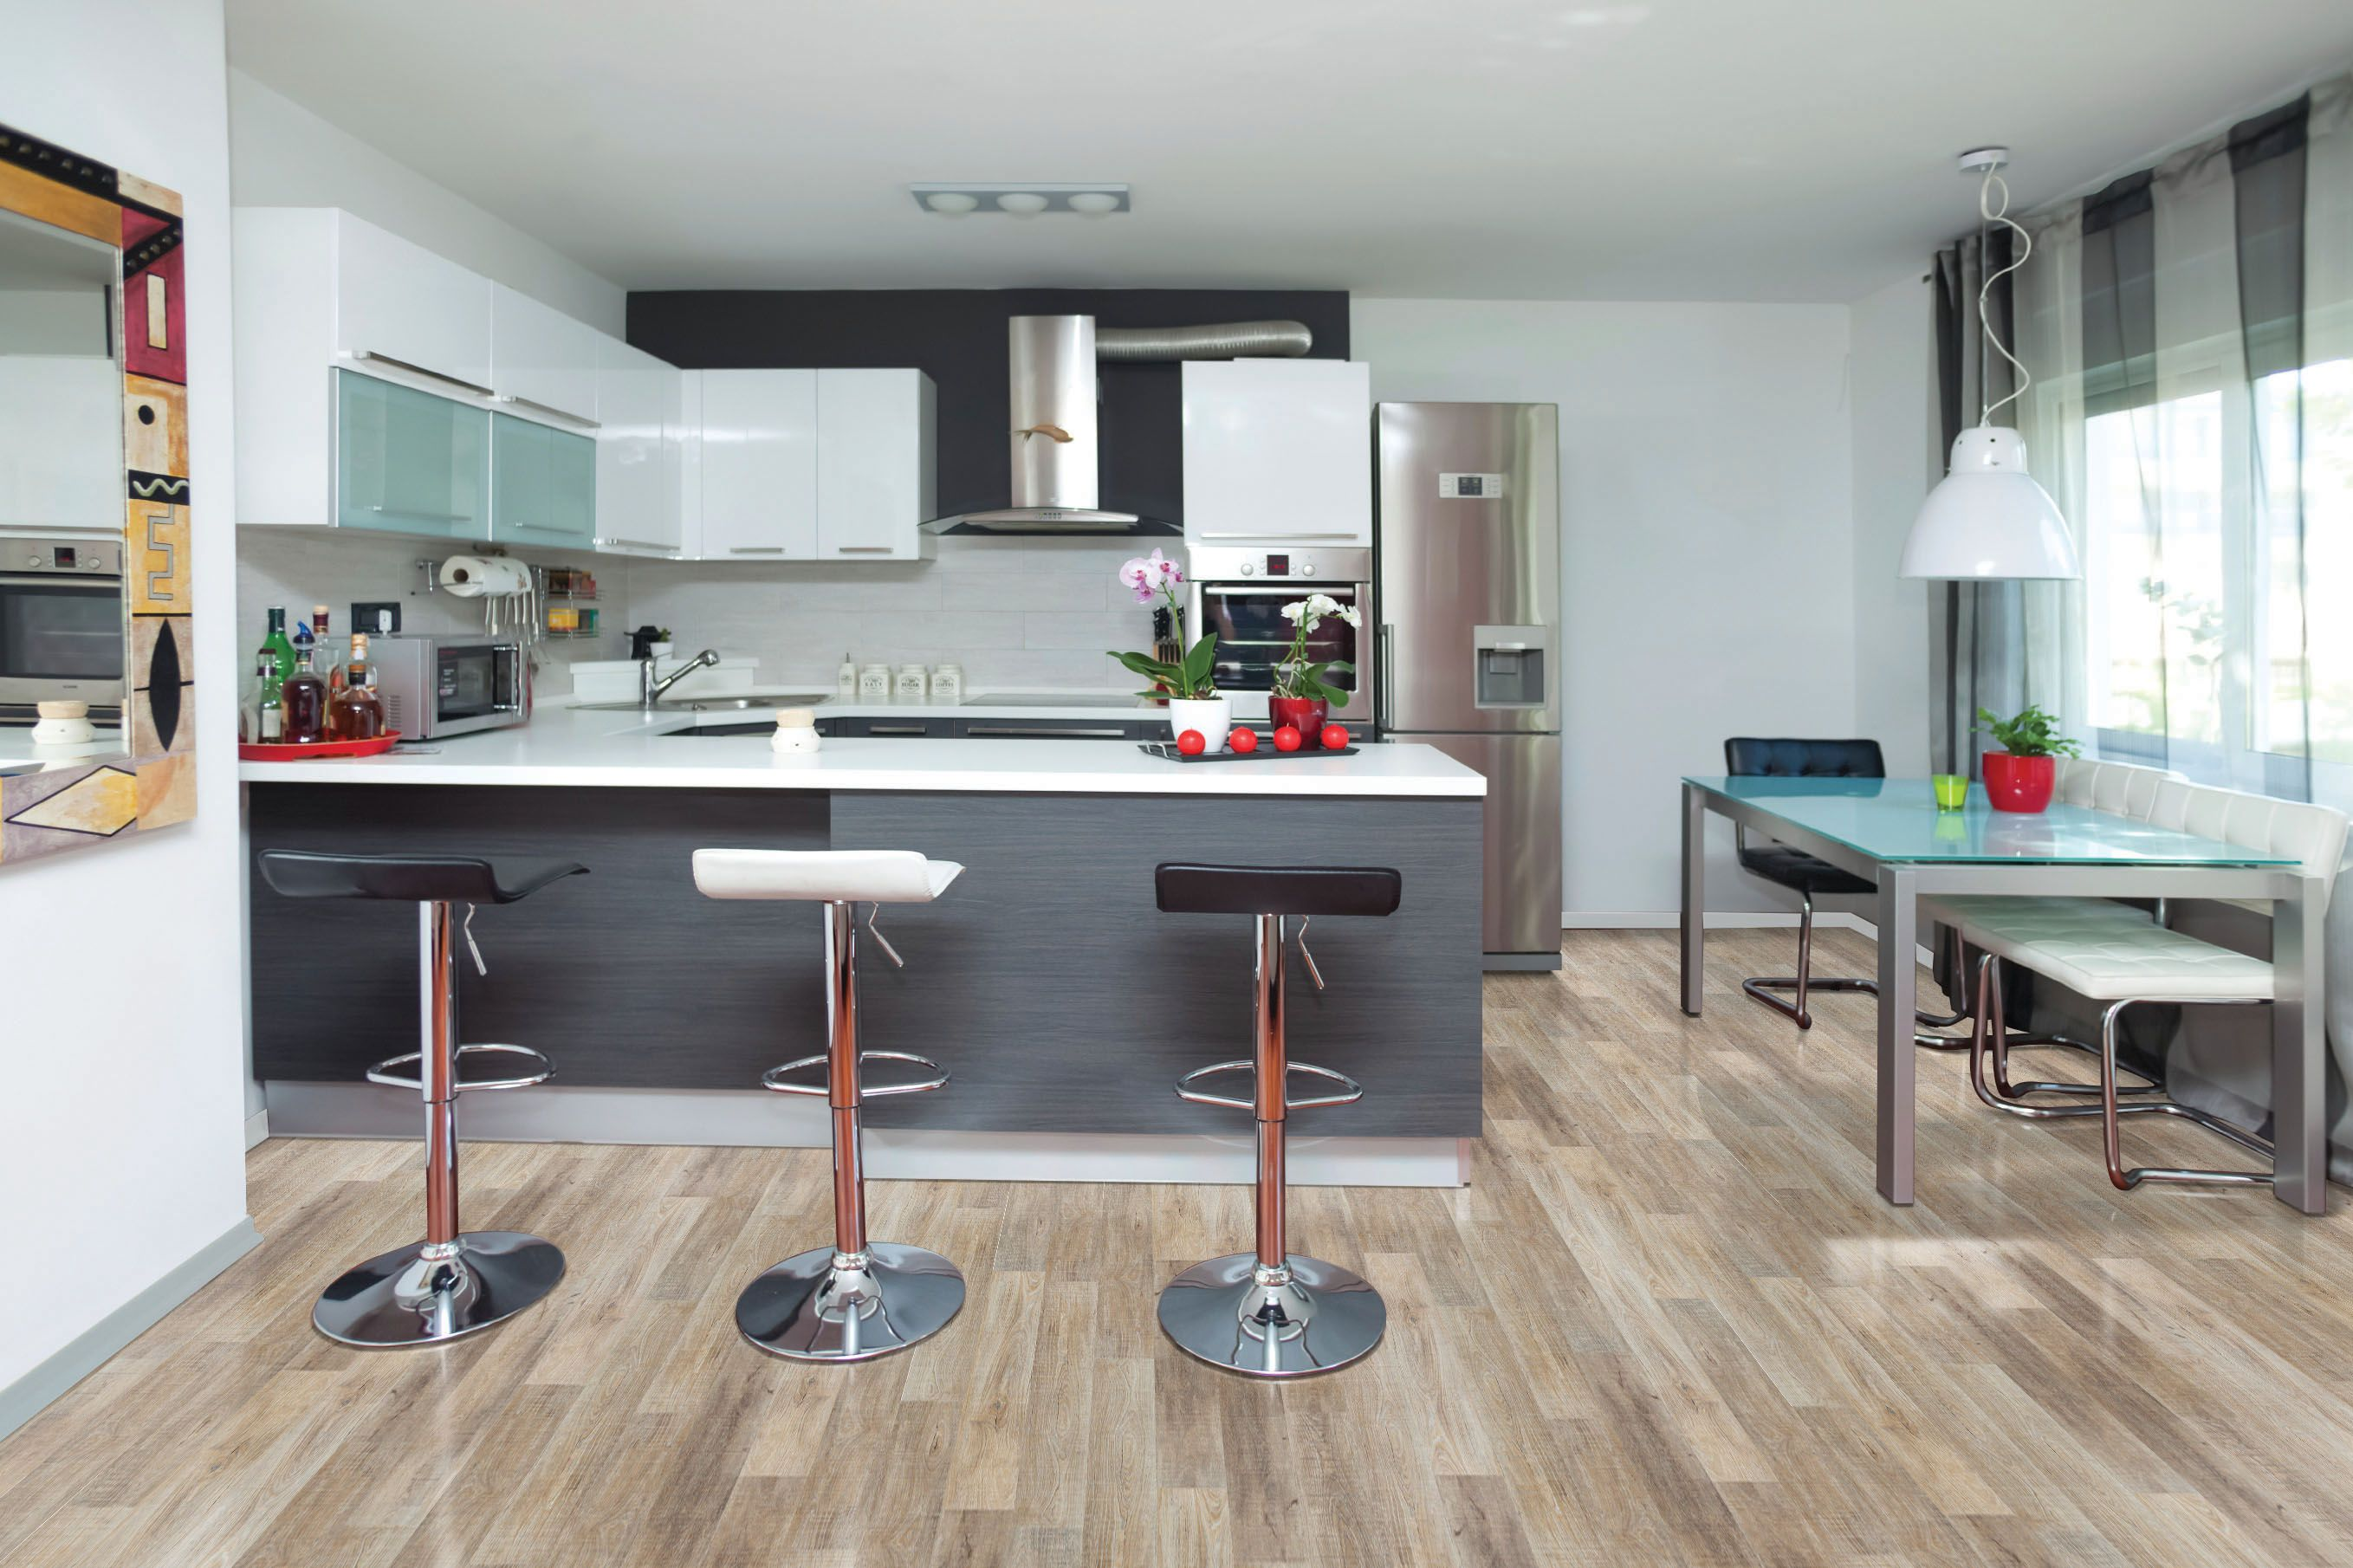 Is Cork Flooring Good For Kitchens Autumn Leaf Oak From Our New Harris Luxury Vinyl Cork Flooring